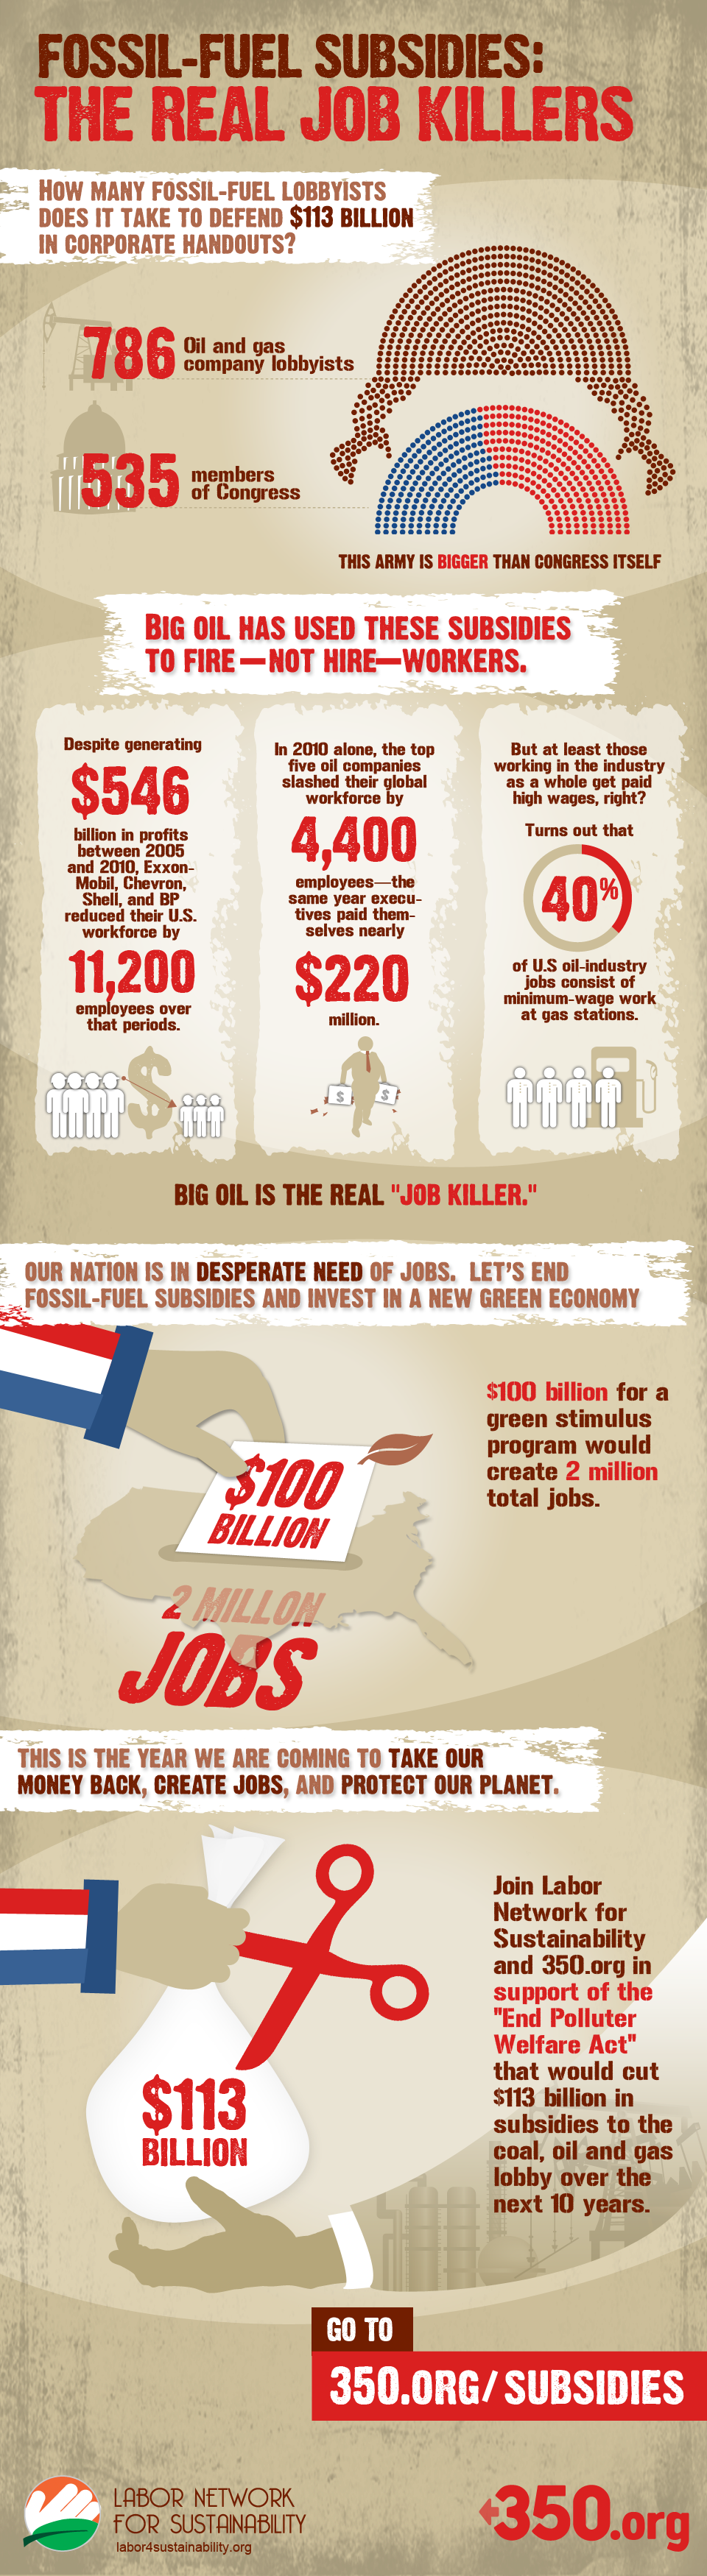 infographic_fossil-fuel-job-killers